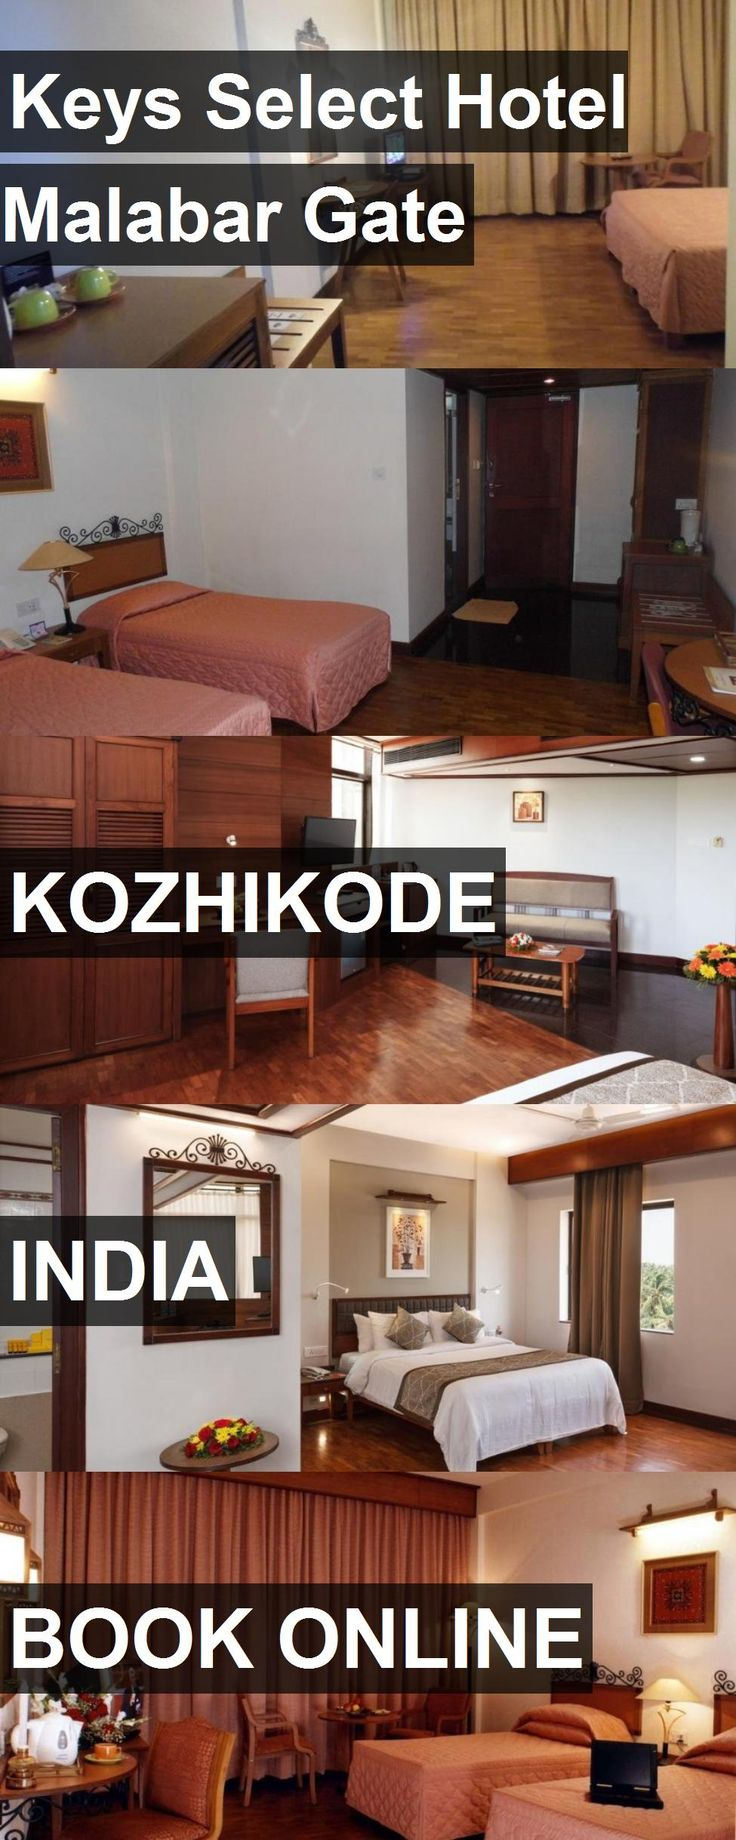 indian bedroom furniture catalogue%0A Hotel Keys Select Hotel Malabar Gate in Kozhikode  India  For more  information  photos